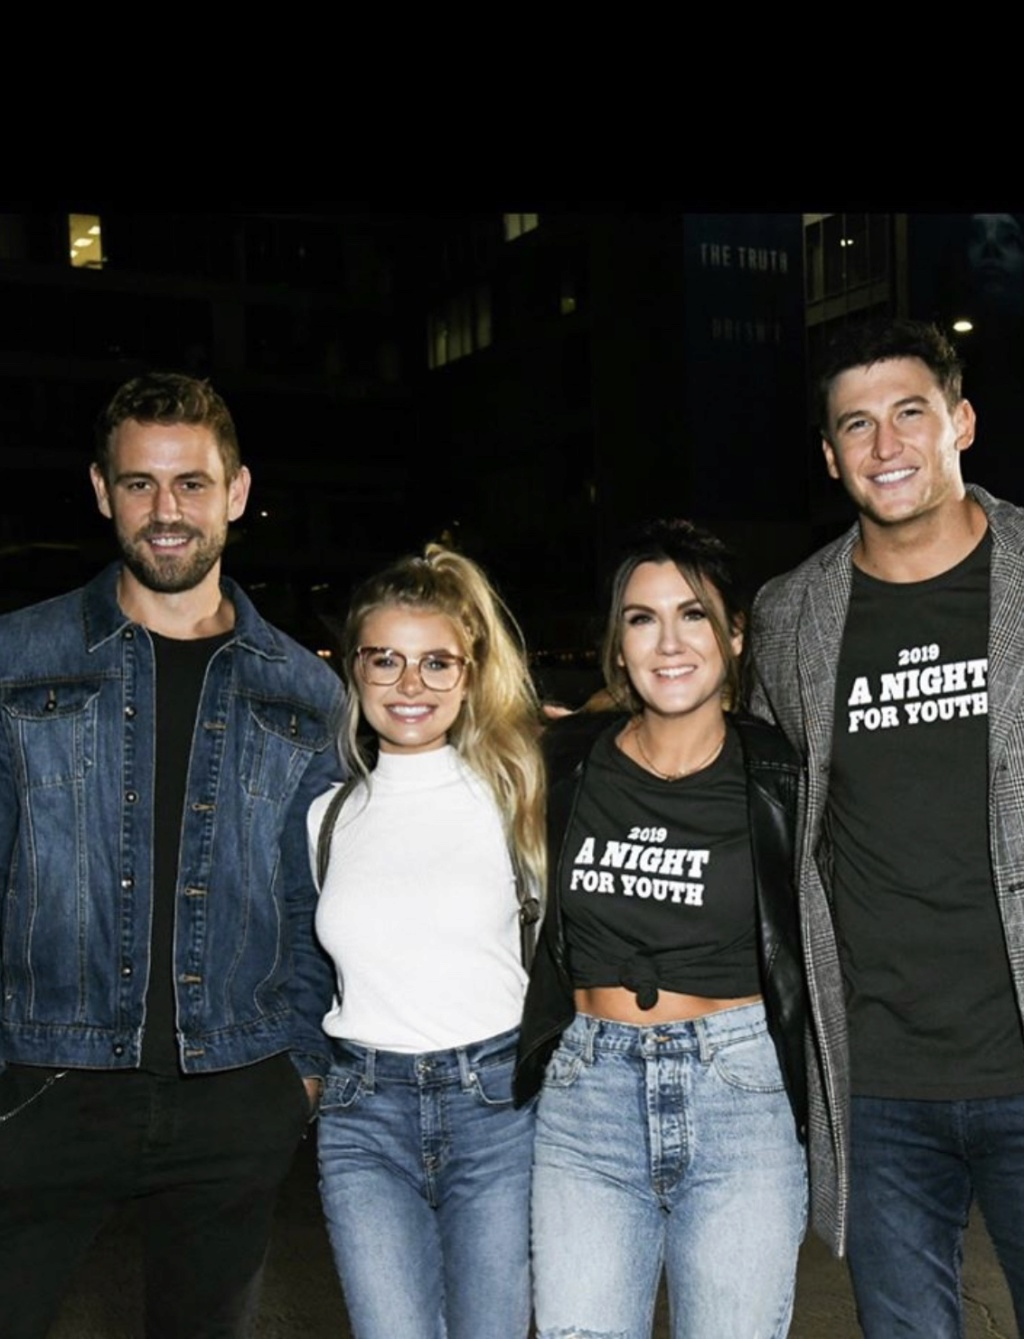 Nick Viall - Bachelor 21 - FAN Forum - Discussion #27 - Page 65 7140e110